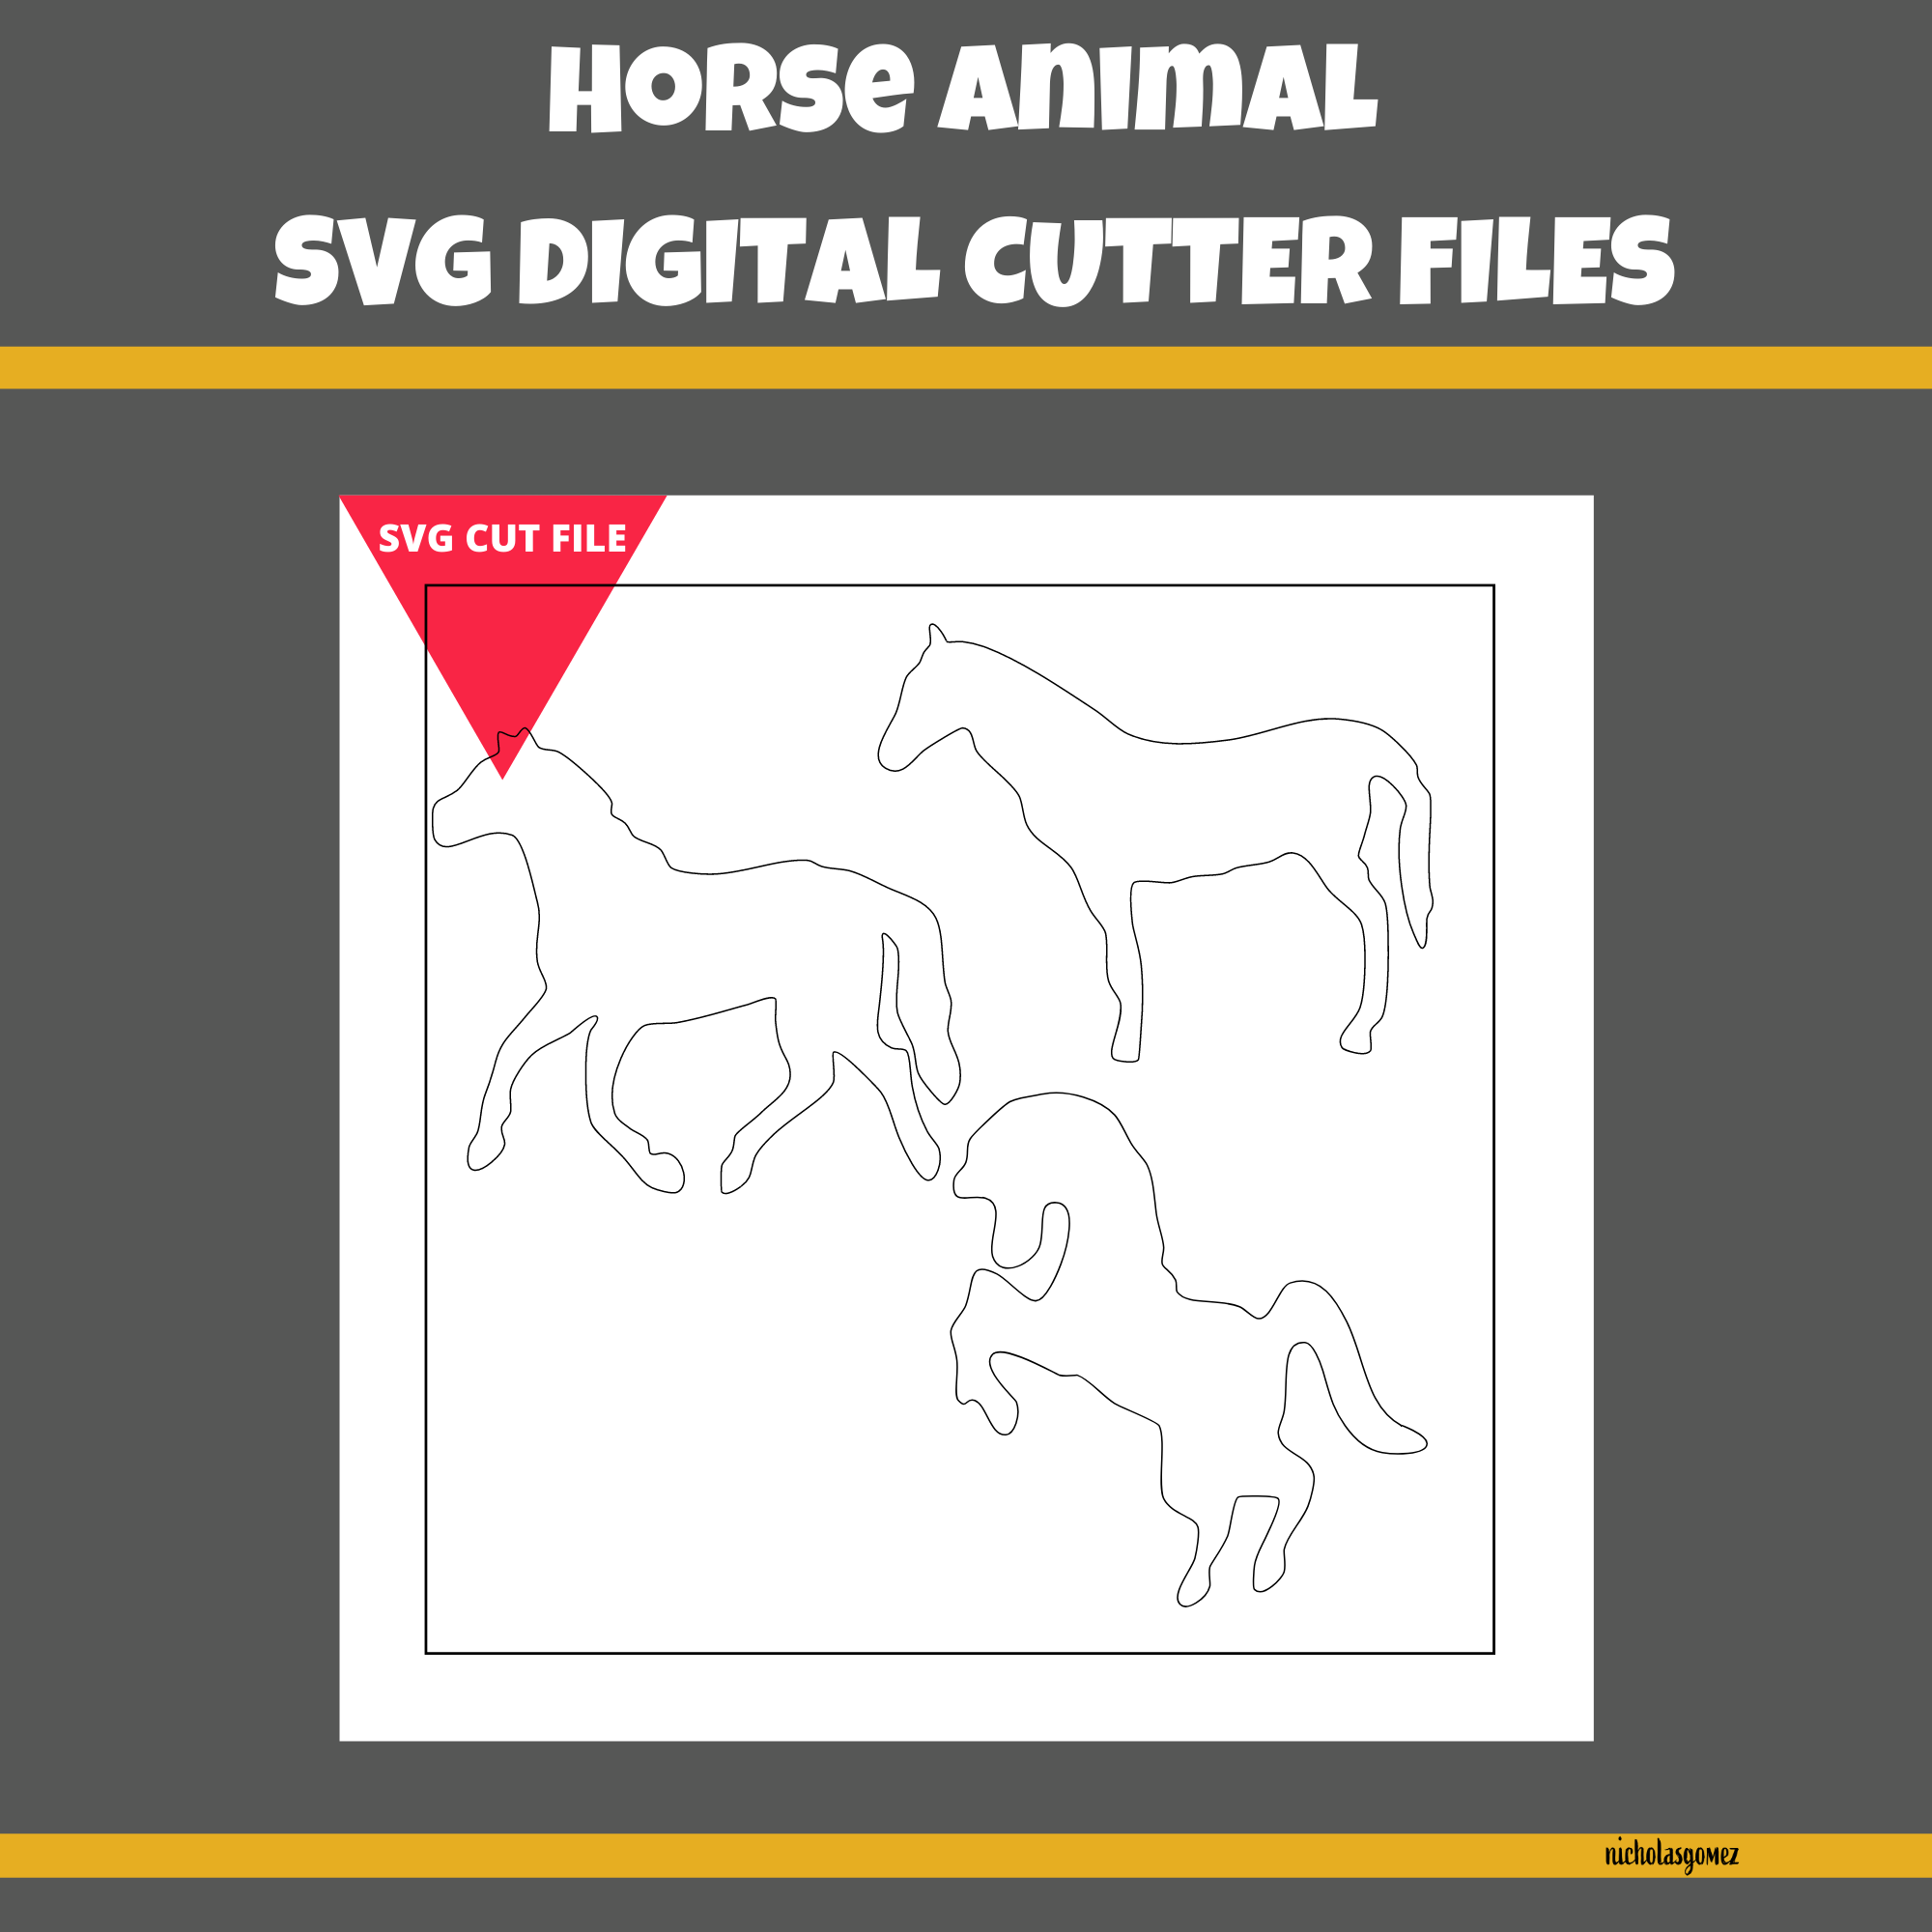 Horse Animal SVG Cut FIle